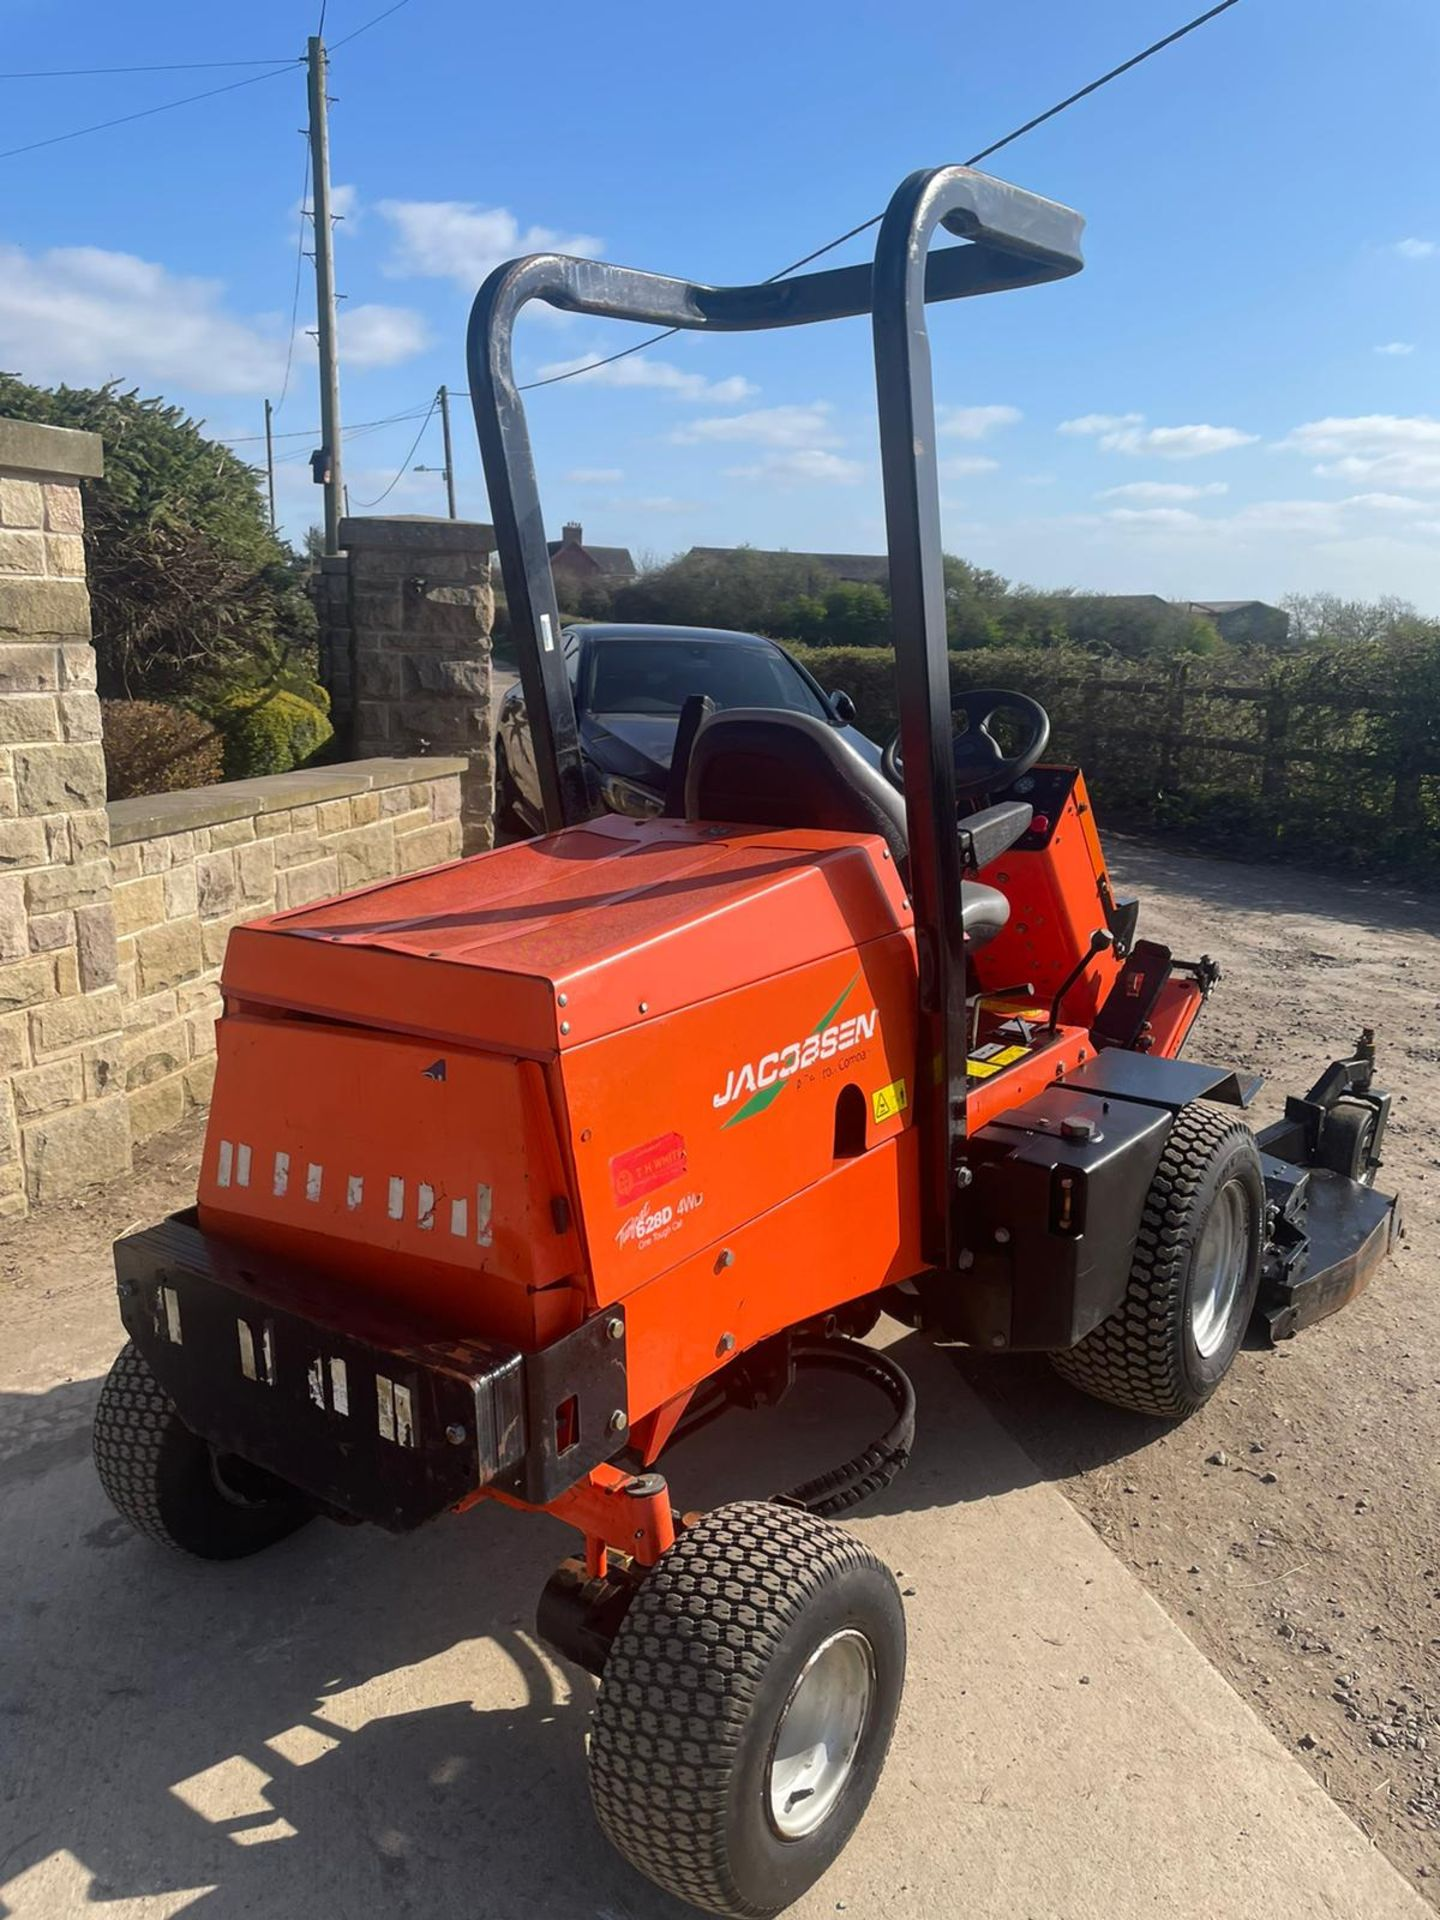 2013 JACOBSON 628D RIDE ON LAWN MOWER OUT FRONT, VERY GOOD CONDITION, 4 WHEEL DRIVE *NO VAT* - Image 5 of 7